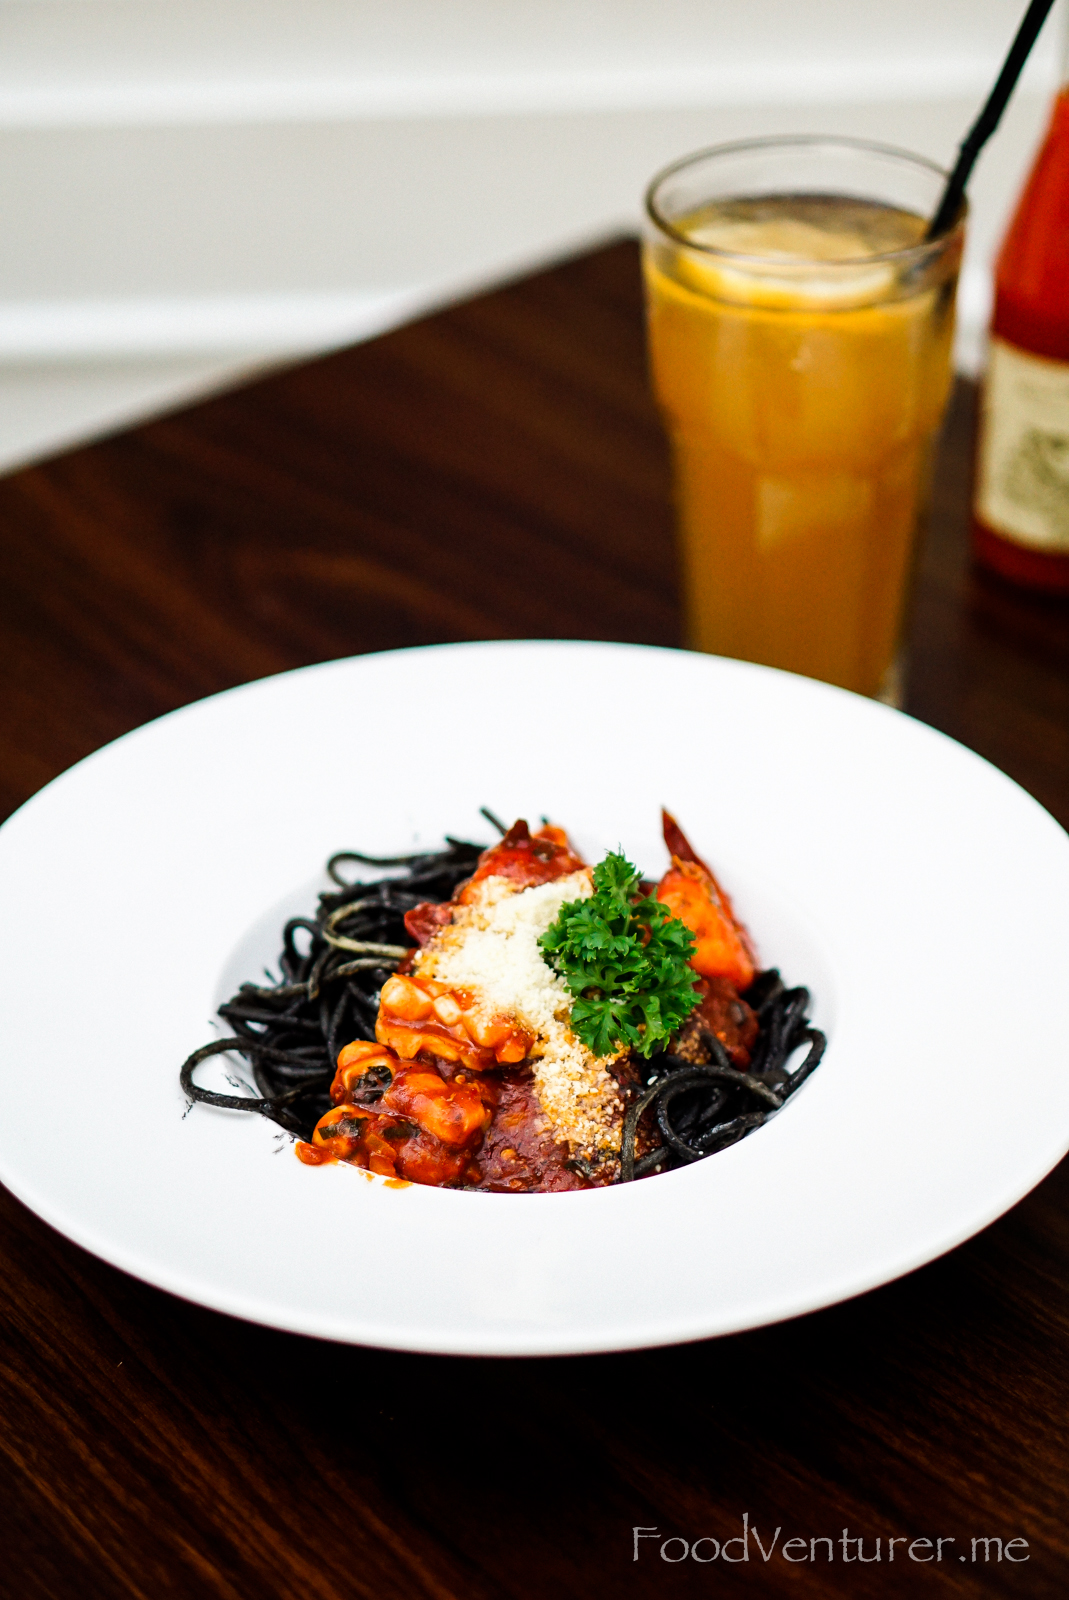 Spicy Spaghetti Seafood Nero - Willie Brothers Steakhouse - Puri